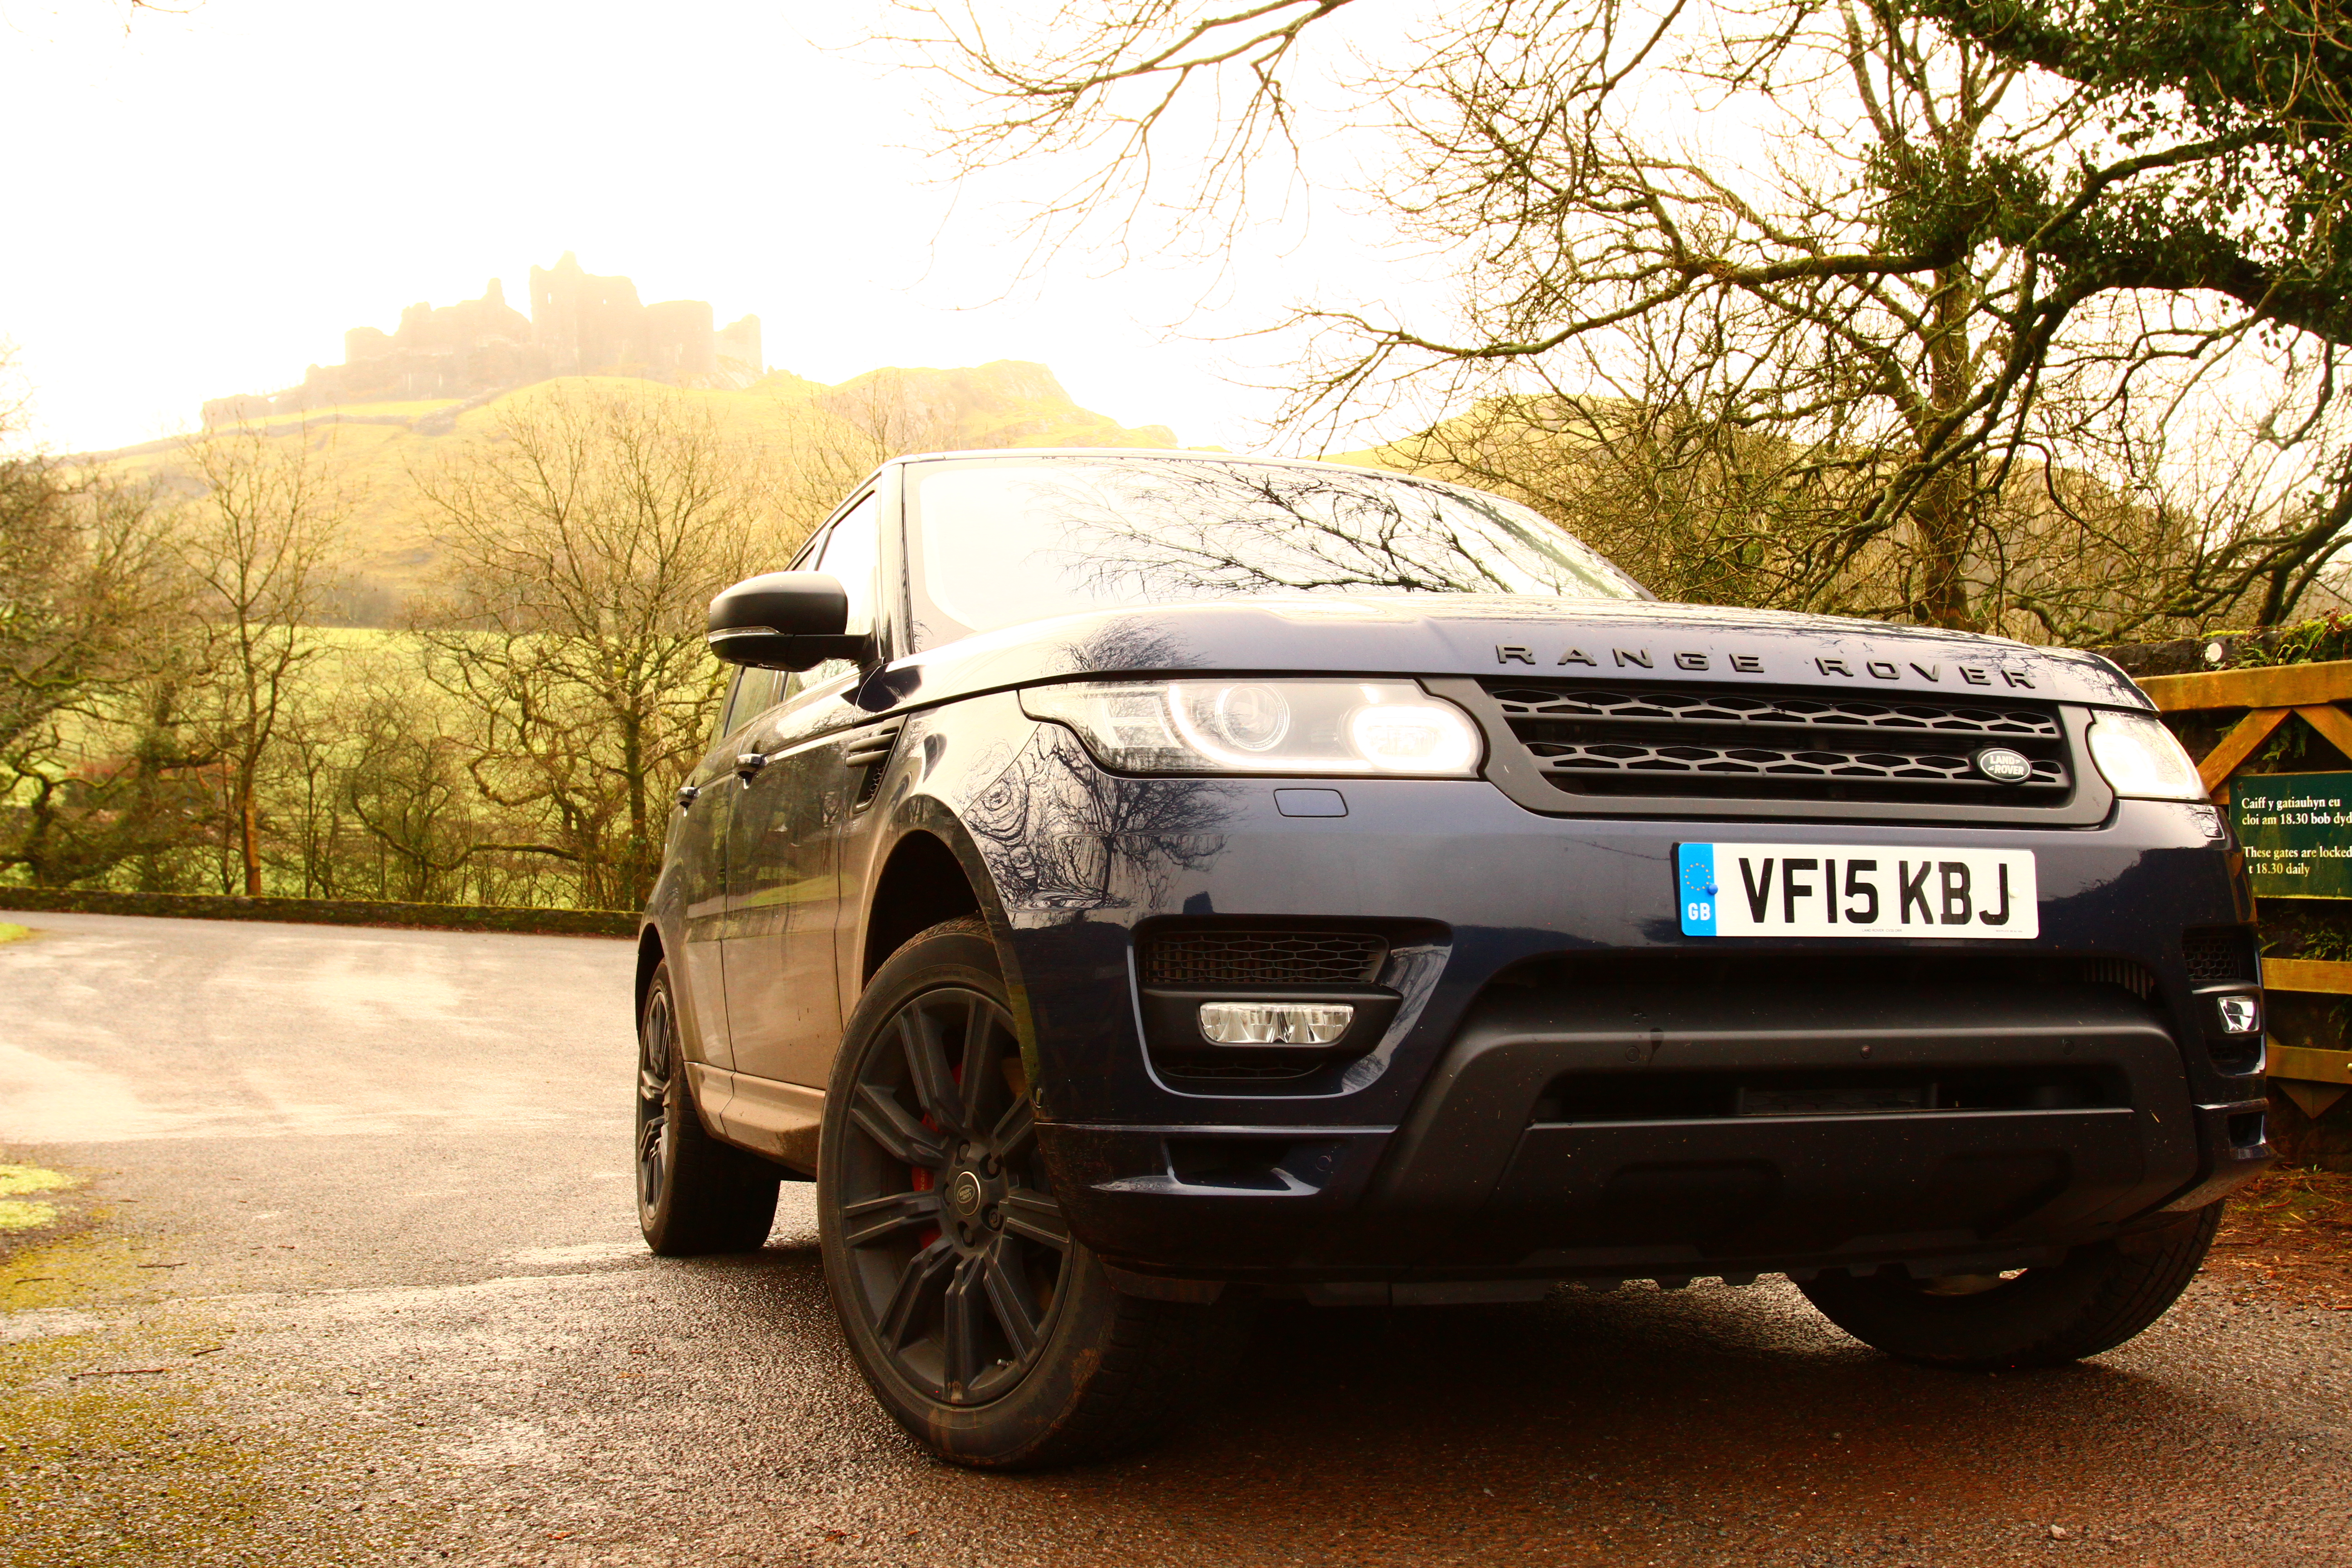 The Range Rover Sport was a perfect companion on a drive to Carreg Cennen in Wales.